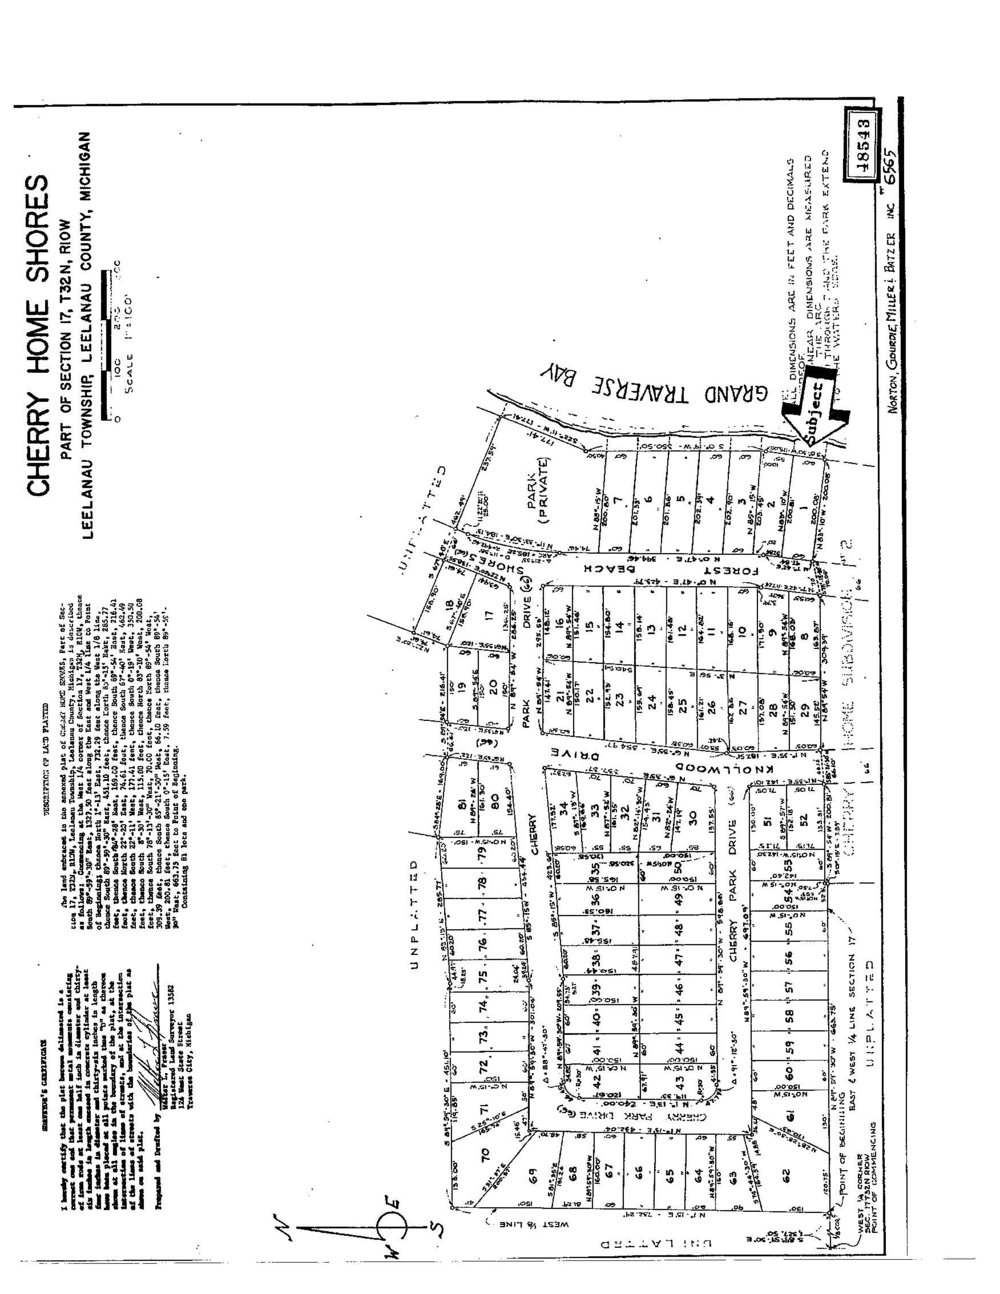 Lot 1 - N Forest Beach Shores, Northport – FOR SALE by Oltersdorf Realty LLC - Marketing Packet (7).jpg